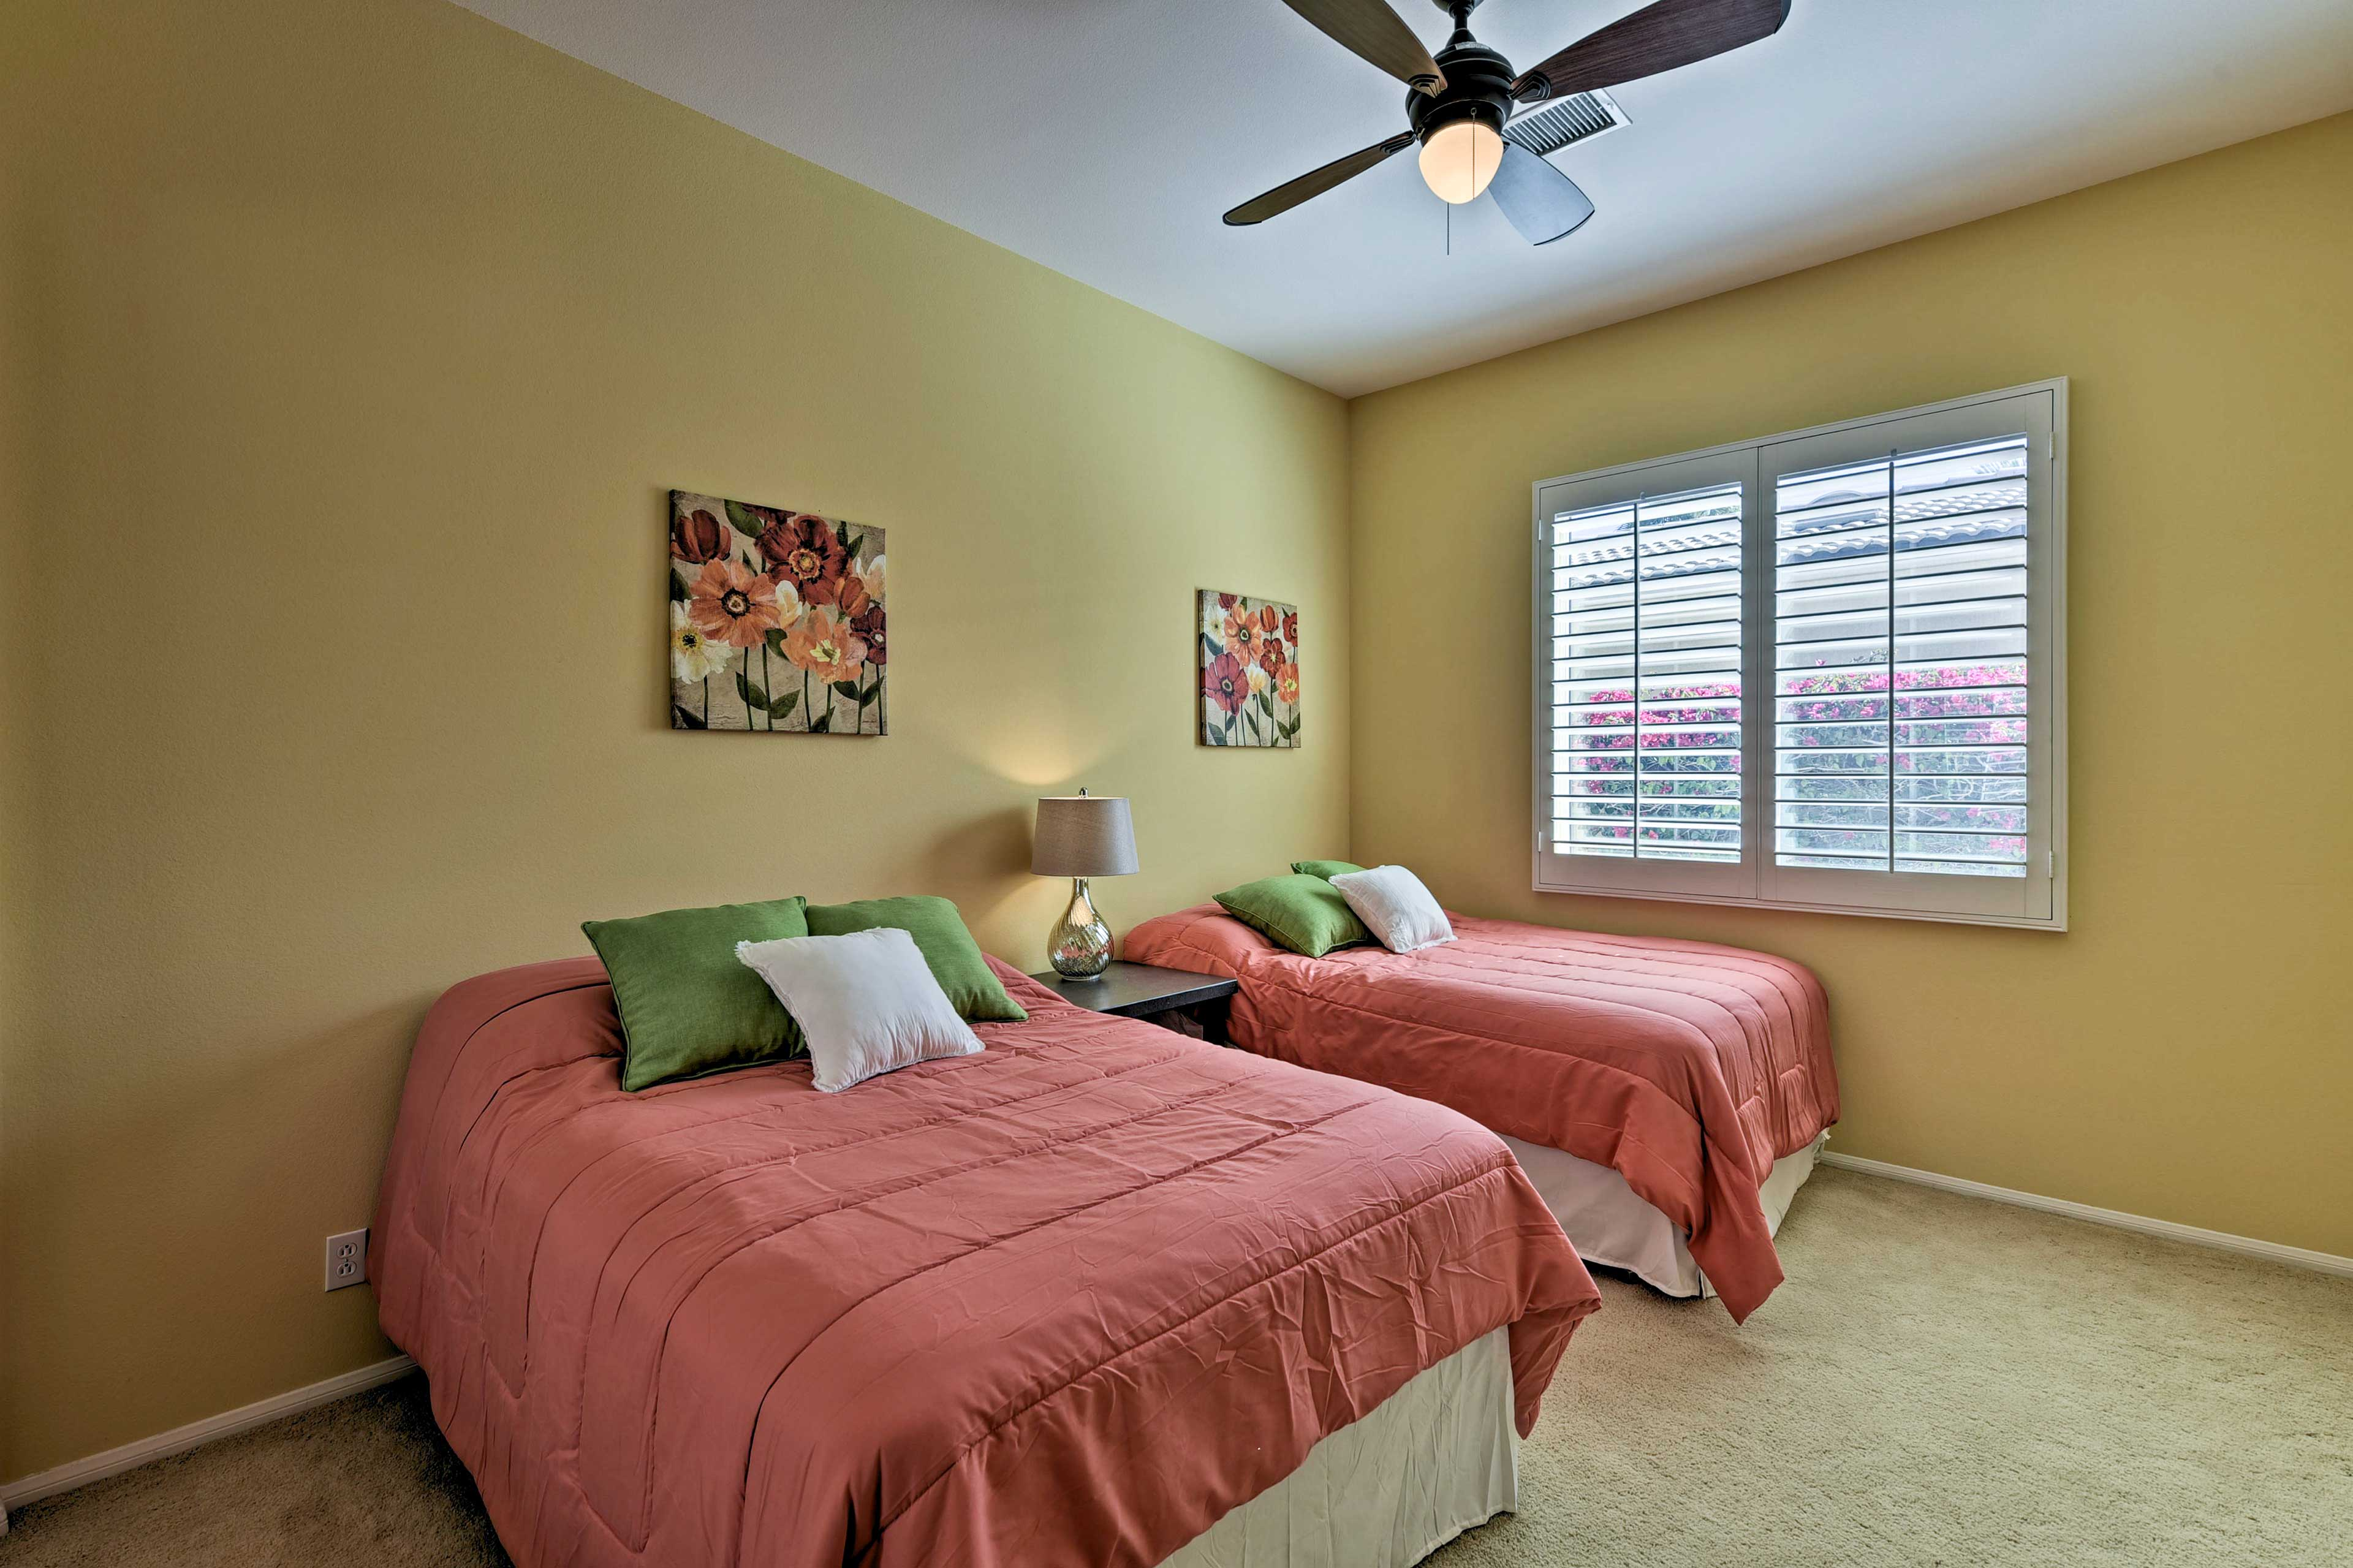 This vibrantly hued space has 2 full beds.